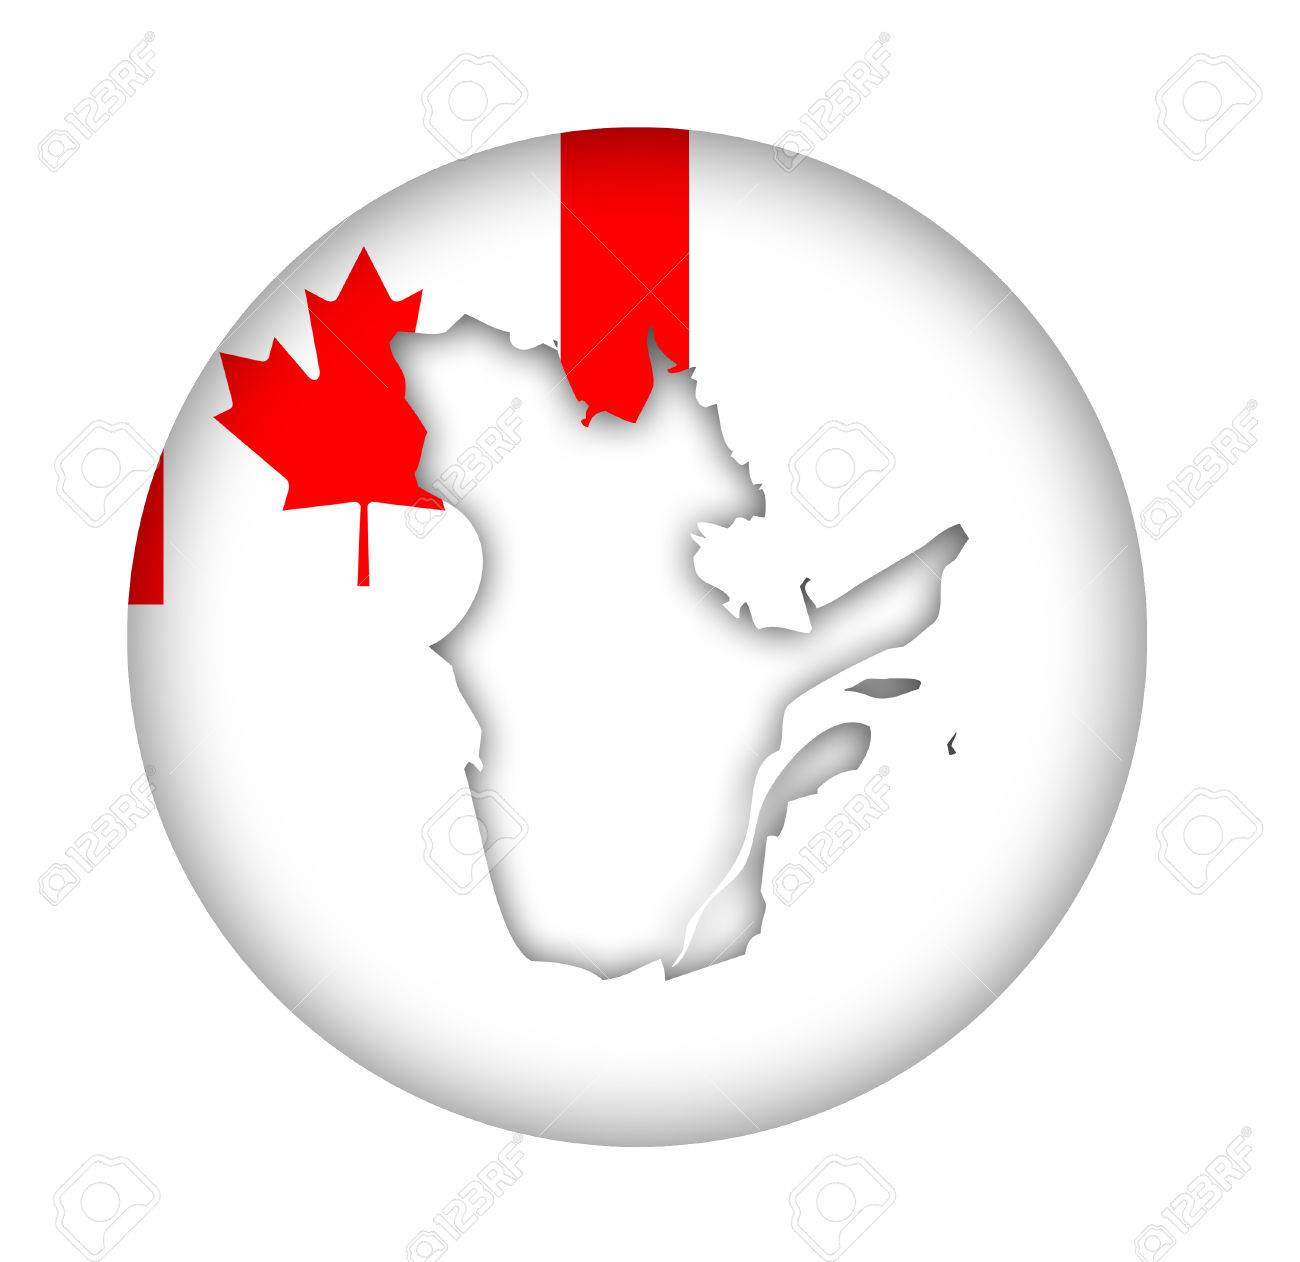 Canada State Of Quebec Map Flag Button Isolated On A White